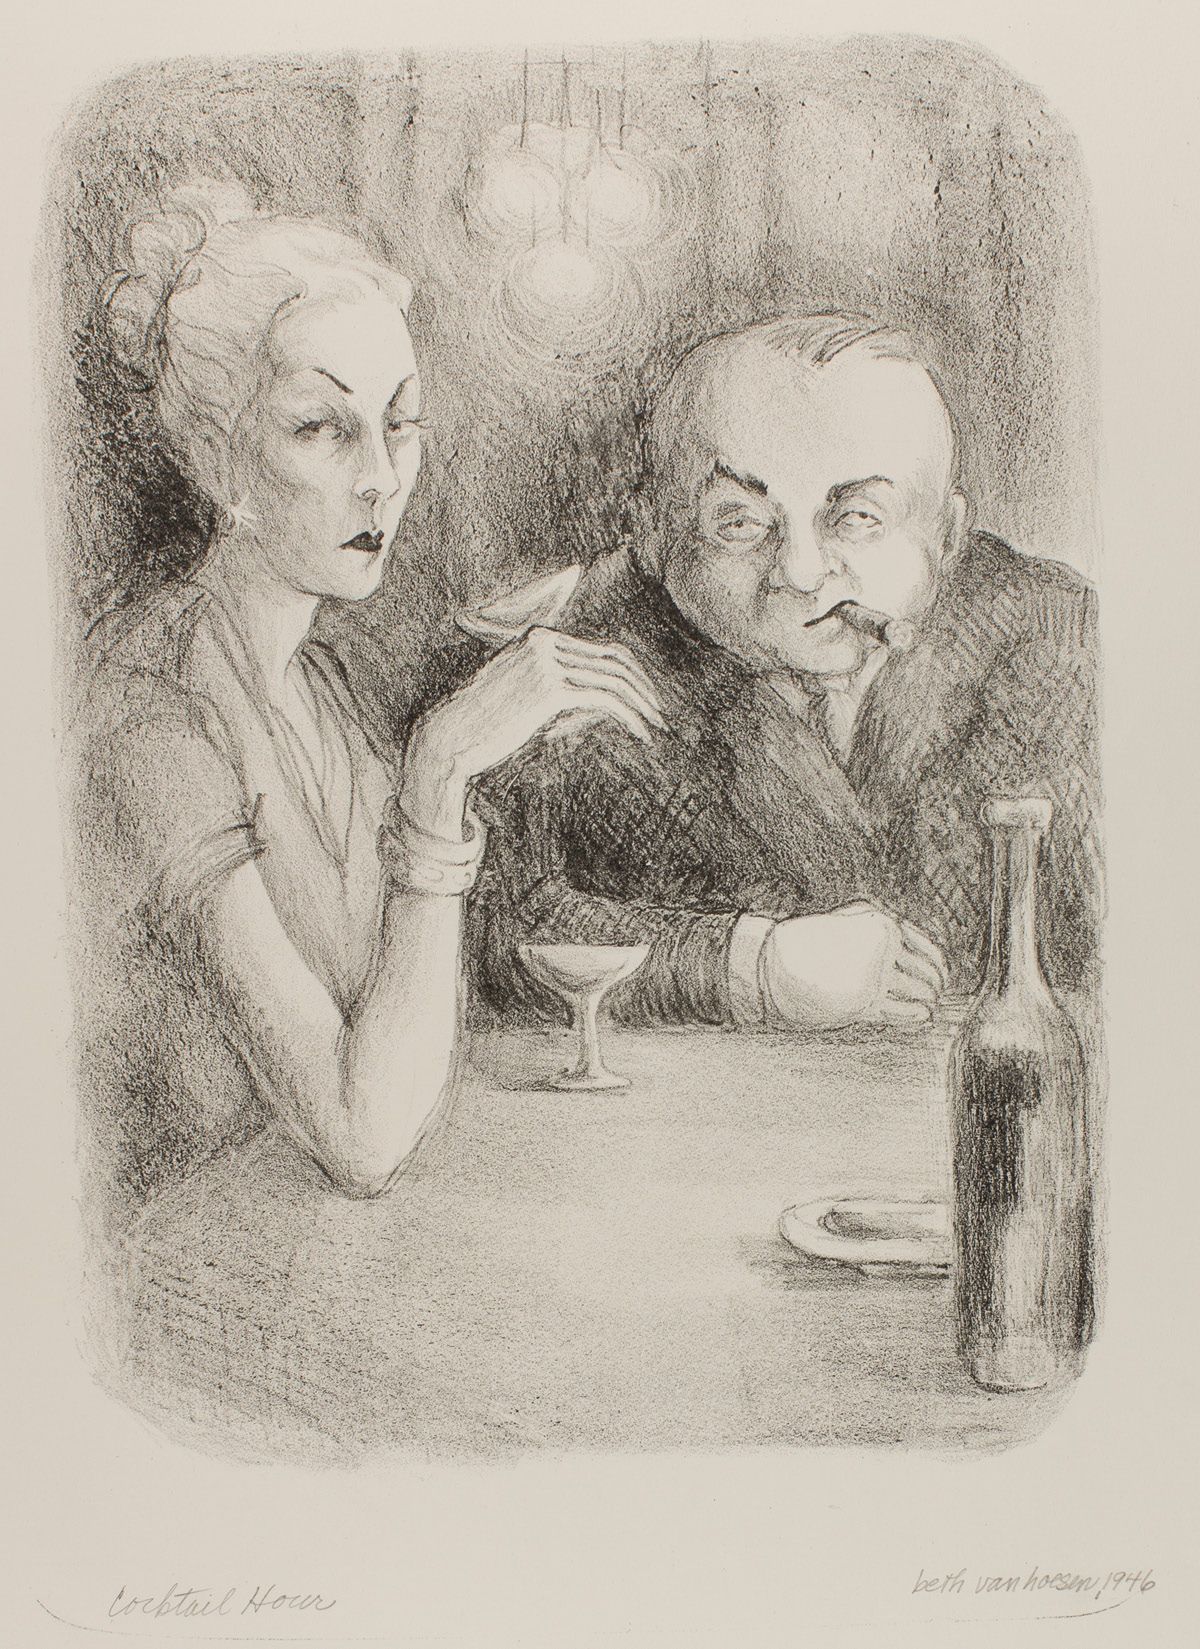 A vertical rectangular print in black on cream depicting two figures in a bar setting having cocktails. At right, a female figure is seen in three quarter view, looking at the viewer holding up a stemmed glass in her hand while her arm rests on her elbow. Her pale hair is swept back from her narrow face and up into a bun. She has thin highly arched eyebrows and a small, dark mouth. She wears a short-sleeved top showing thin arms with bracelets on the wrist. Her hand and fingers are also long and thin. Her companion sits to the right and faces the viewer. He has a round broad face with sparse hair on top. He looks out from hooded eyes and has a cigar stuck in the corner of his mouth. He wears a dark suit on his broad body and rest one arm along the bar. A long necked bottled is seen at lower left. Behind the couple is the suggestion of hanging lights. The print has the appearance of a sketch with line drawing, shading and cross hatching.